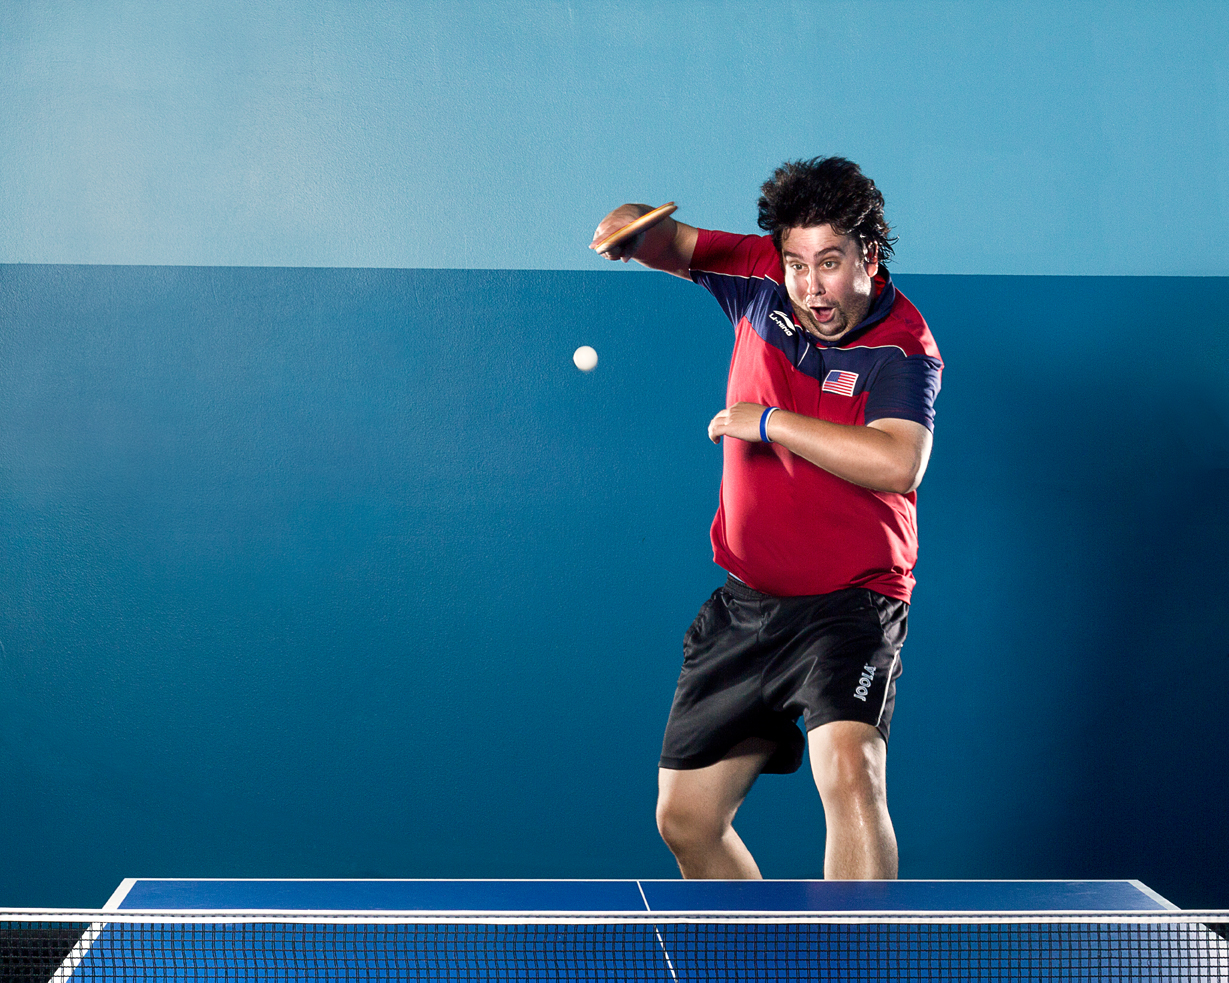 Ping Pong Ad Photo